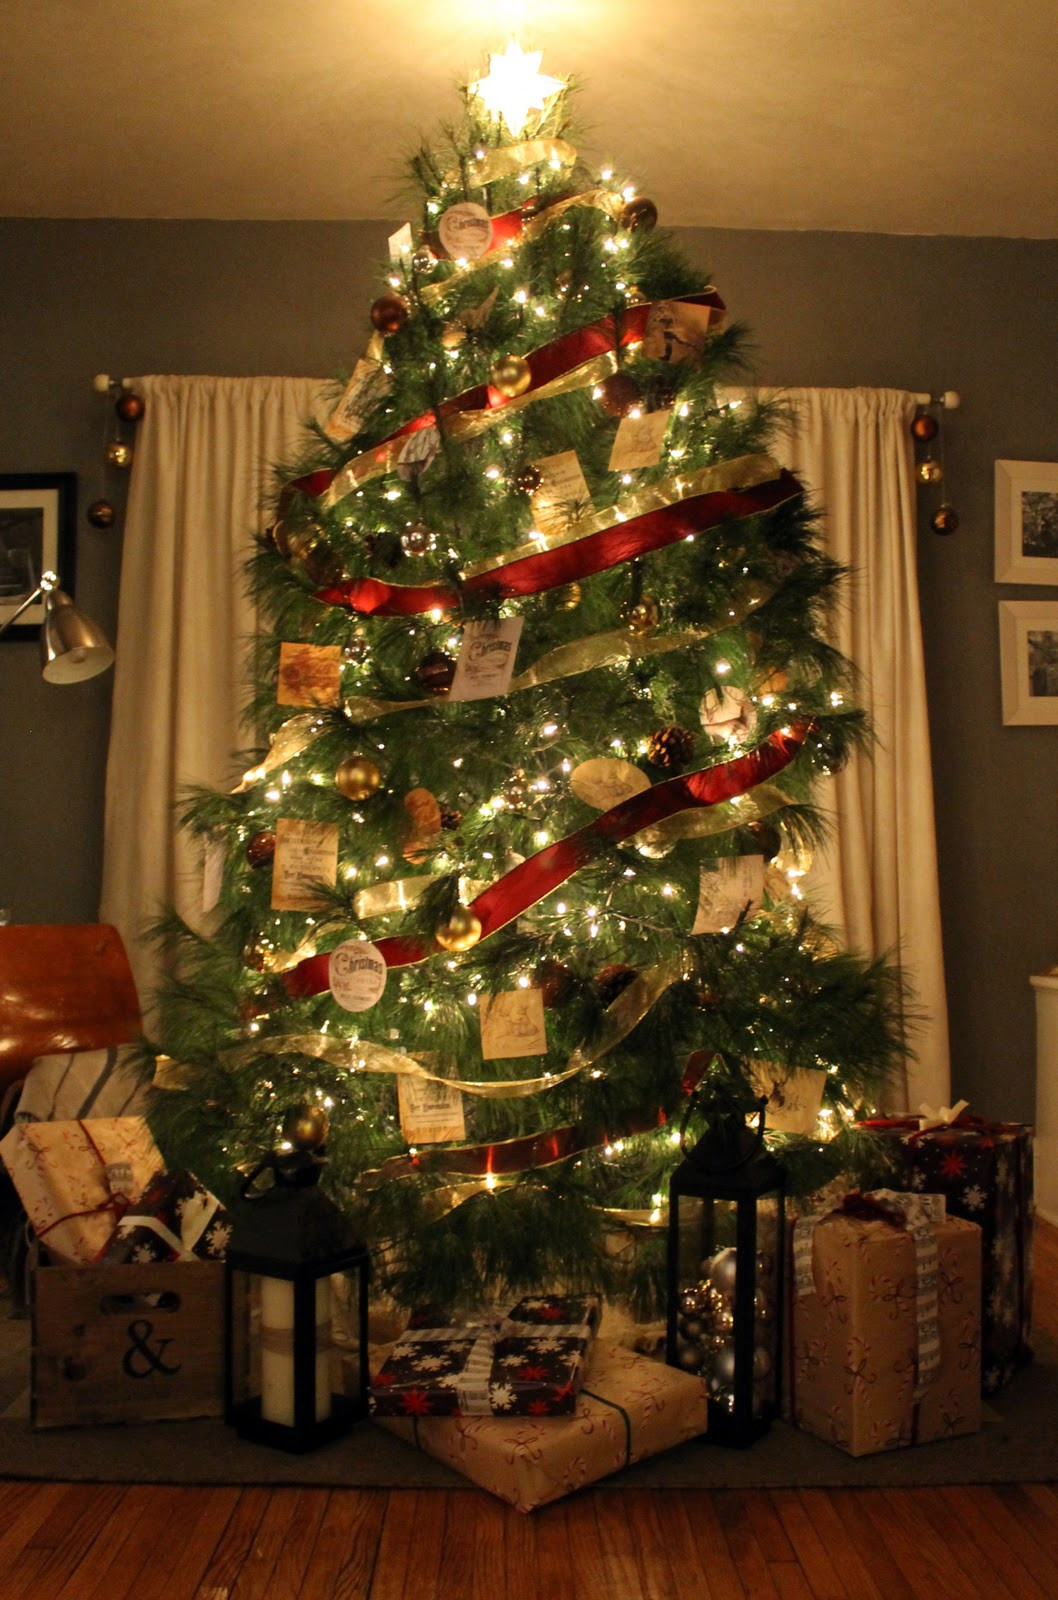 Inspirational Best Christmas Decoration Ideas Project 4 Gallery Christmas Tree and Decorations Of Delightful 50 Pictures Christmas Tree and Decorations